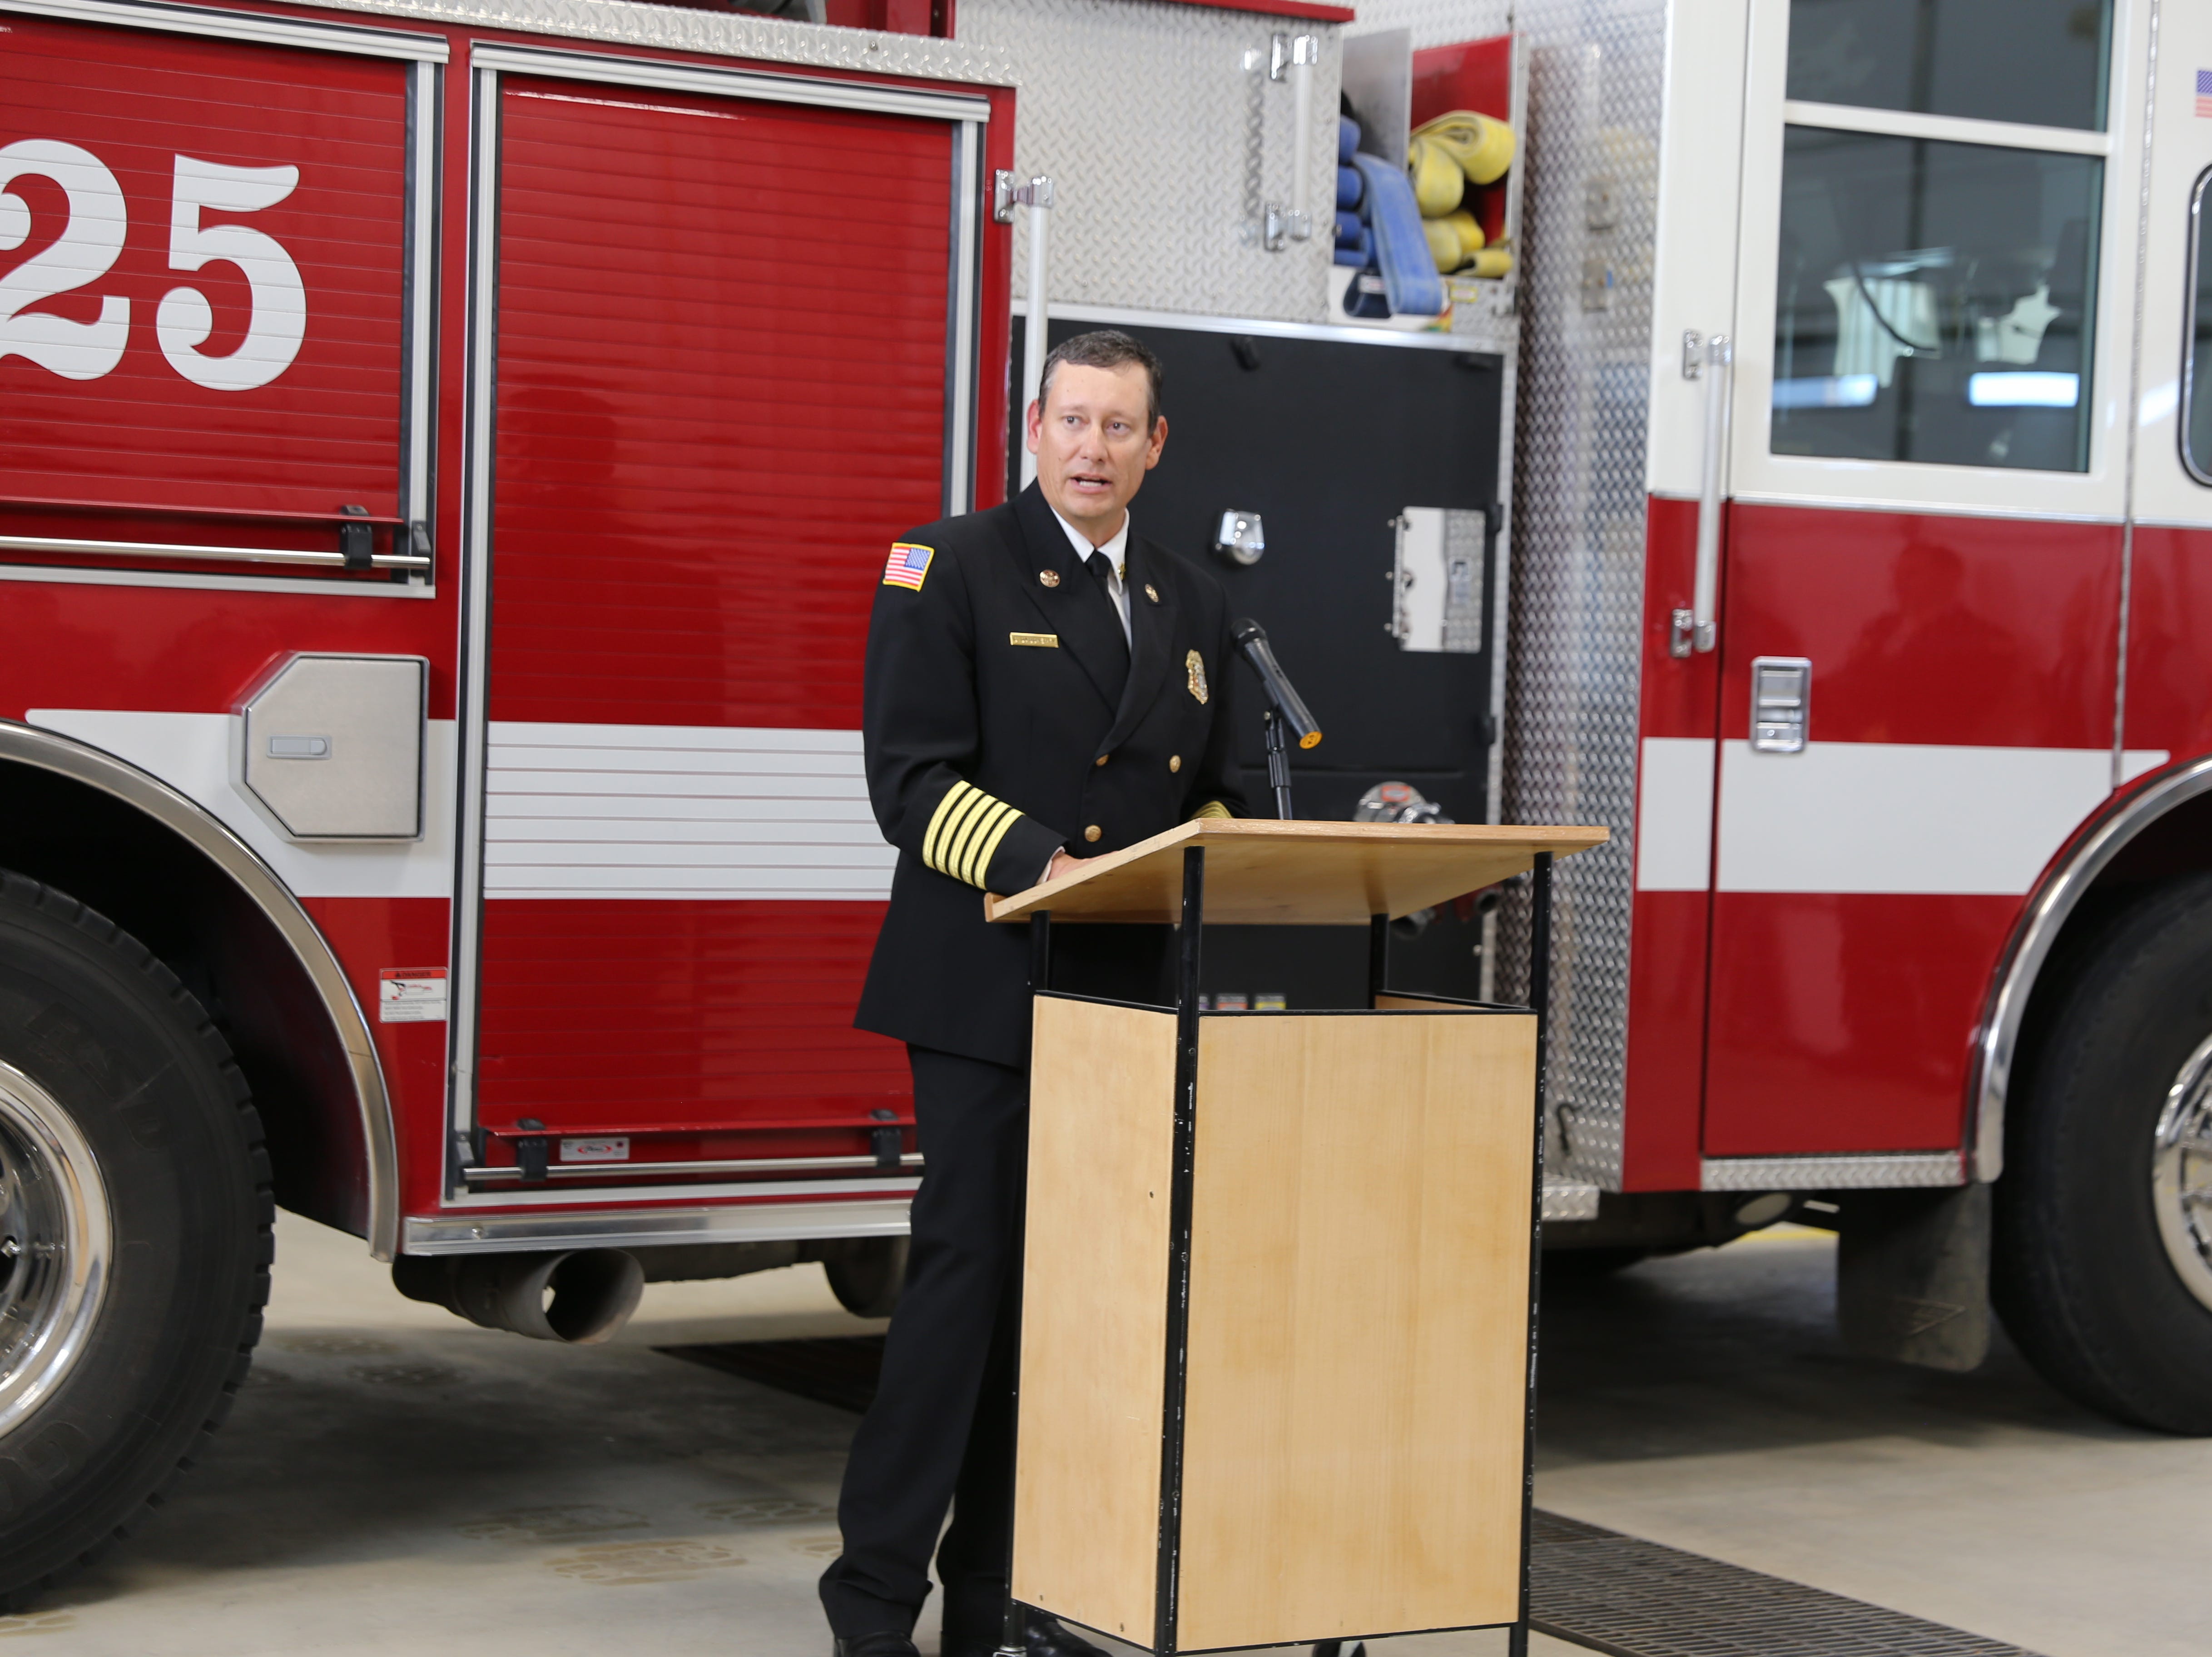 County celebrates opening of newest fire station